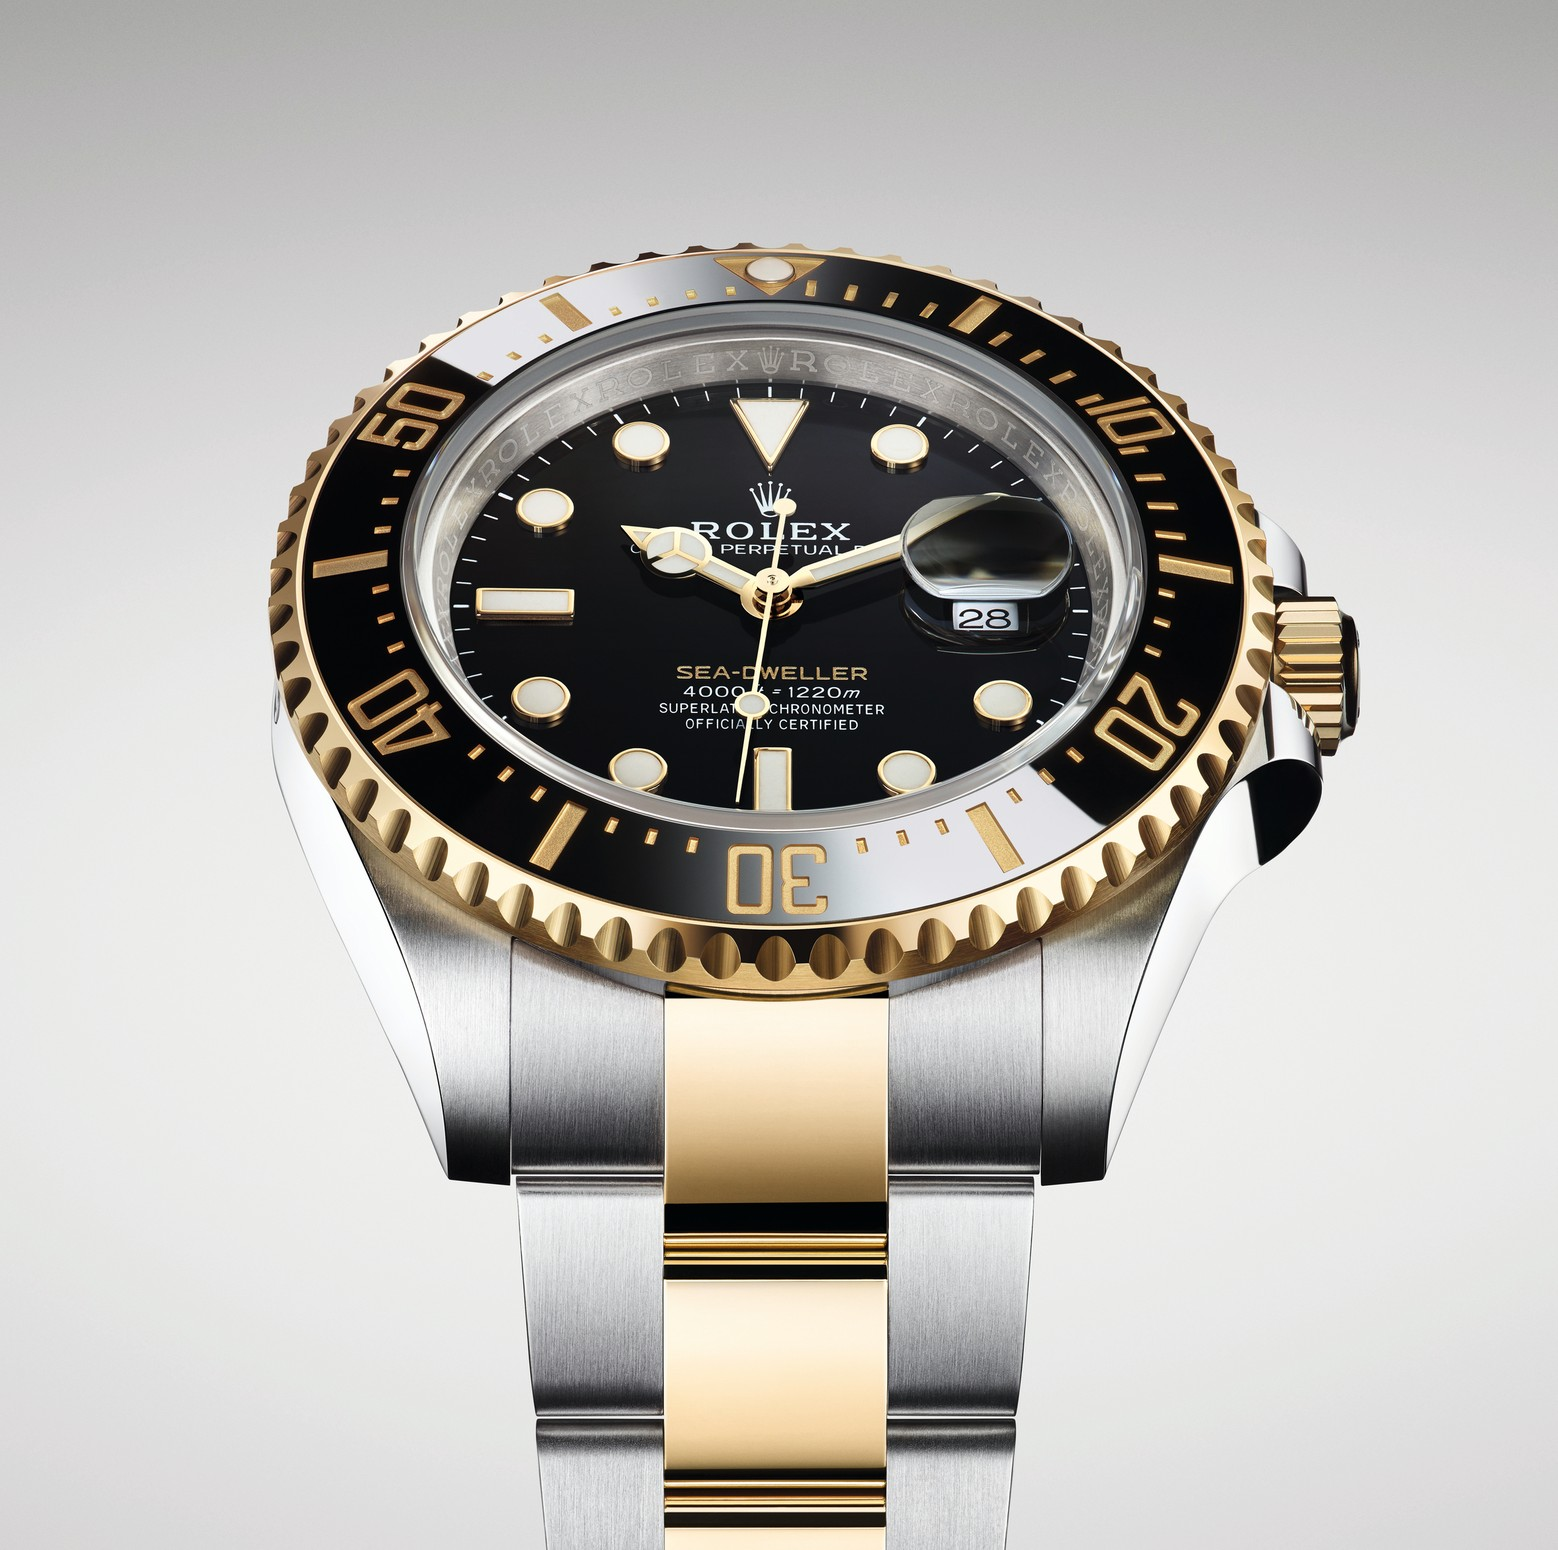 a4459cd6b0549 Most of the watch specs remain the same, but the use of yellow gold brings  the watch into a new, more luxurious, territory.